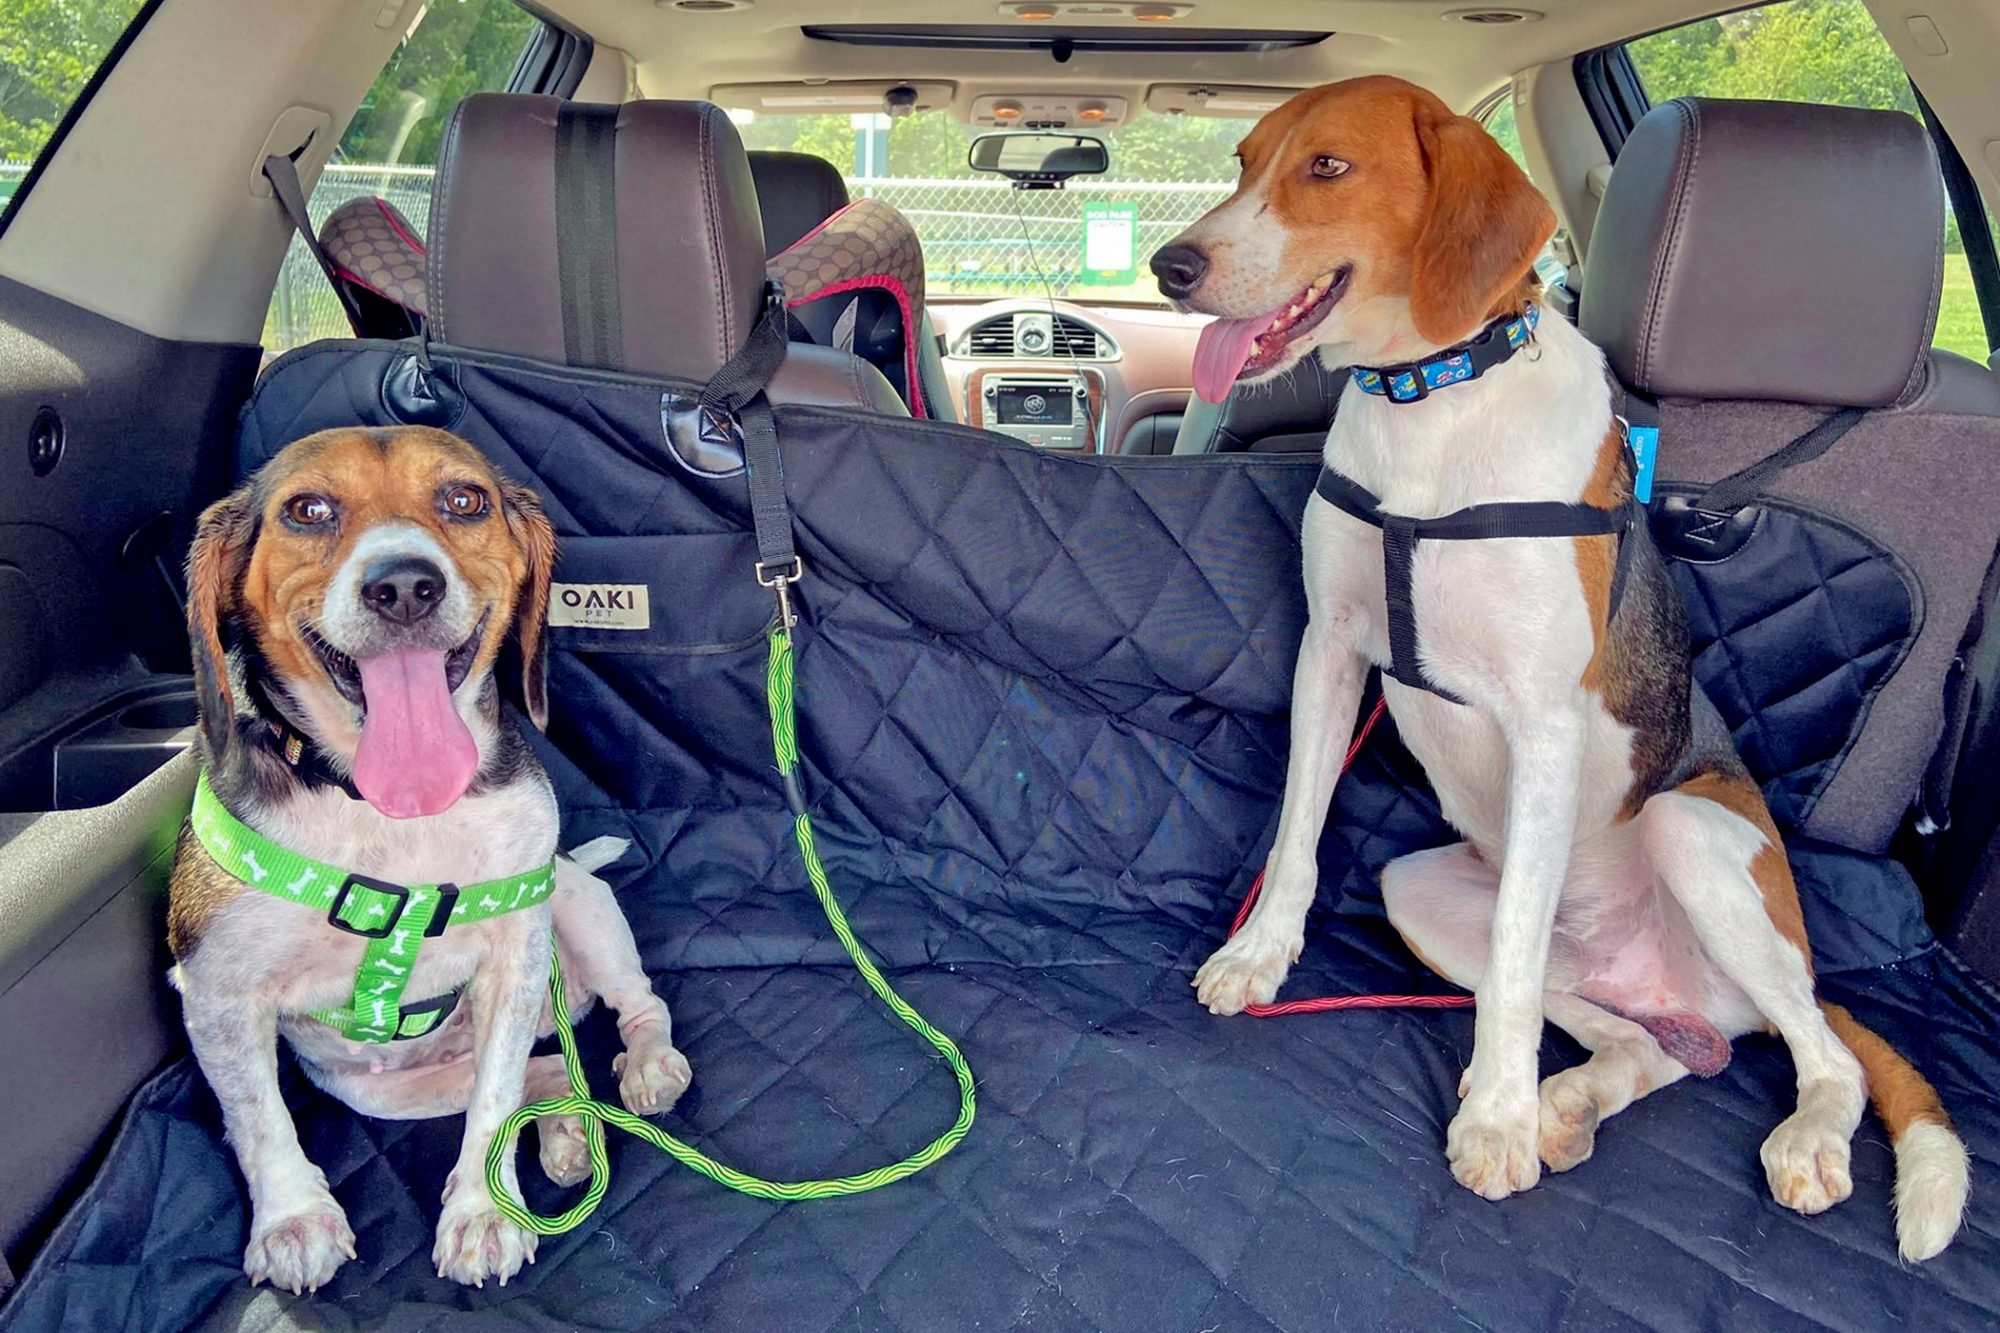 Two beagles relax in back of car